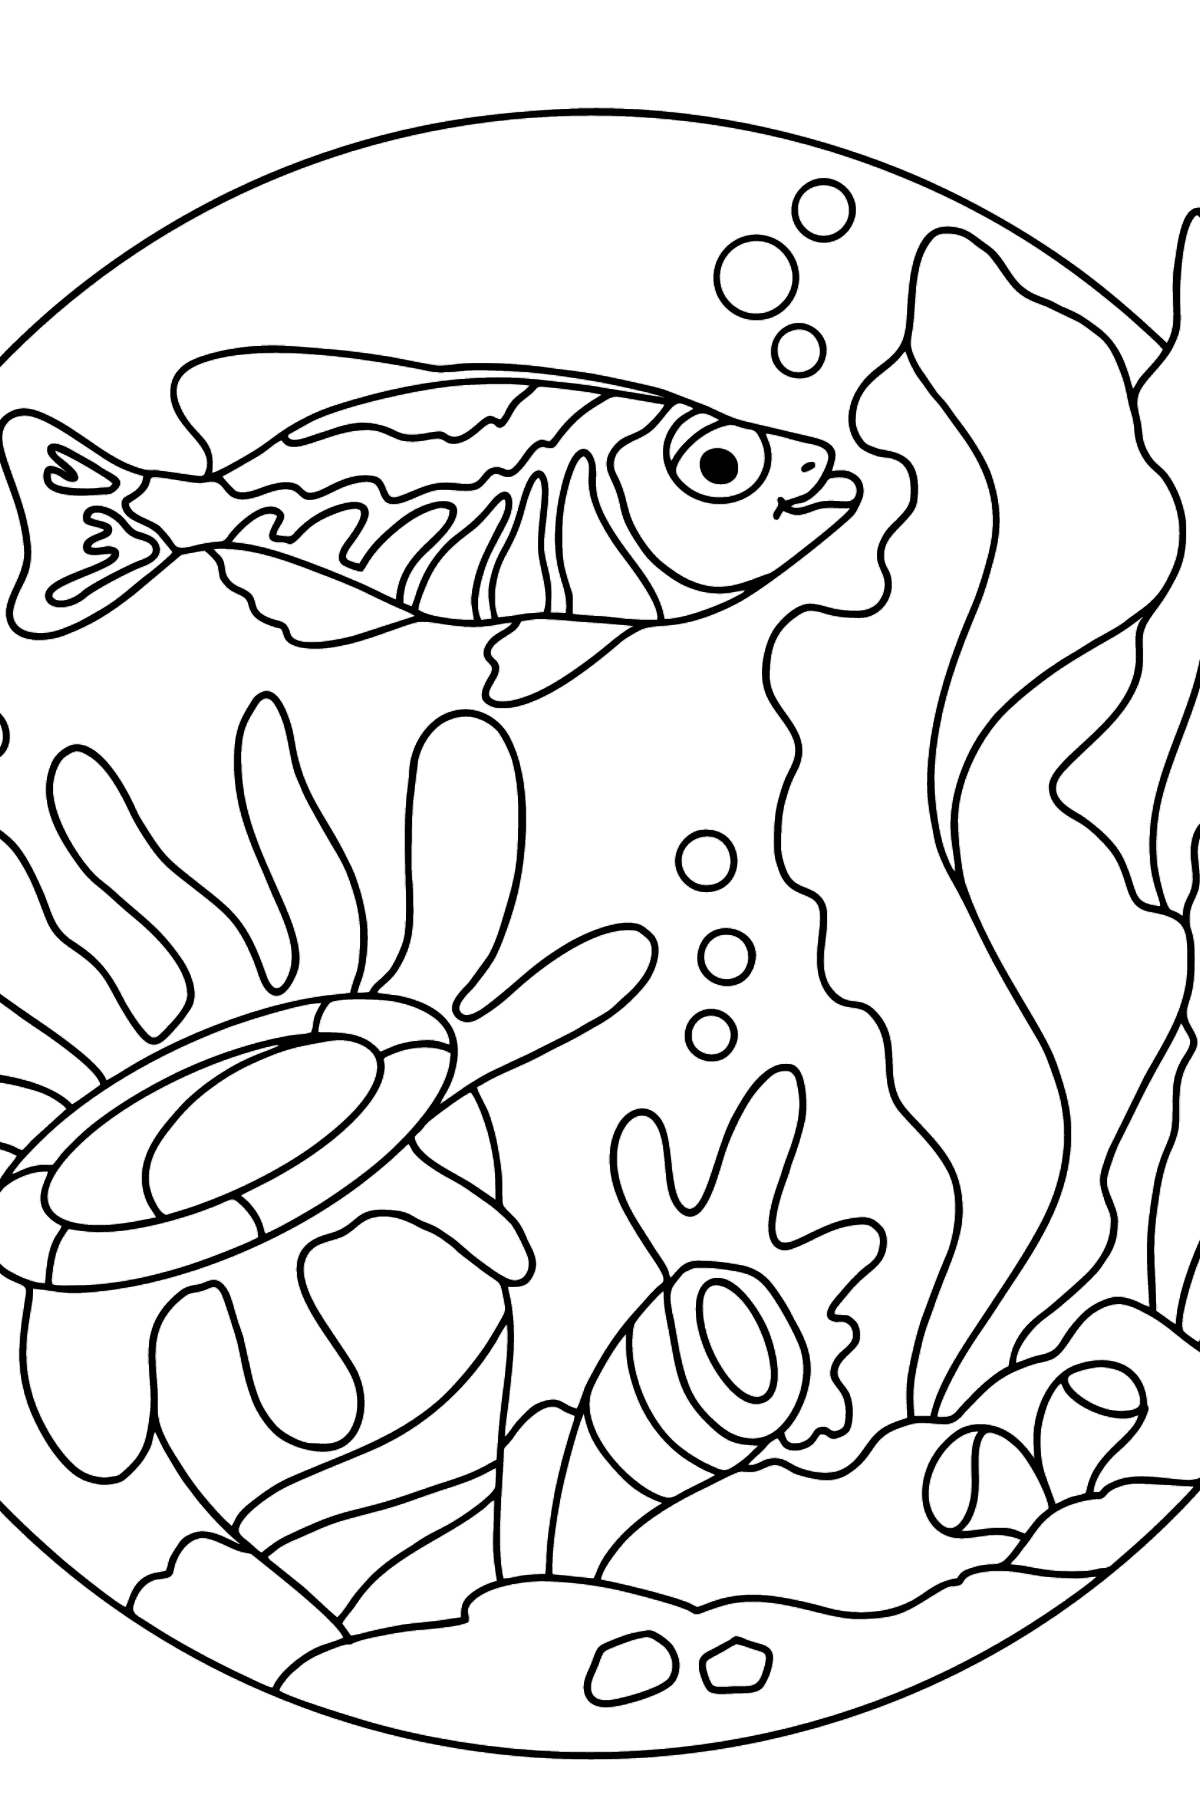 Coloring Page - A Fish is Watching the Corals Dreamily - Coloring Pages for Kids